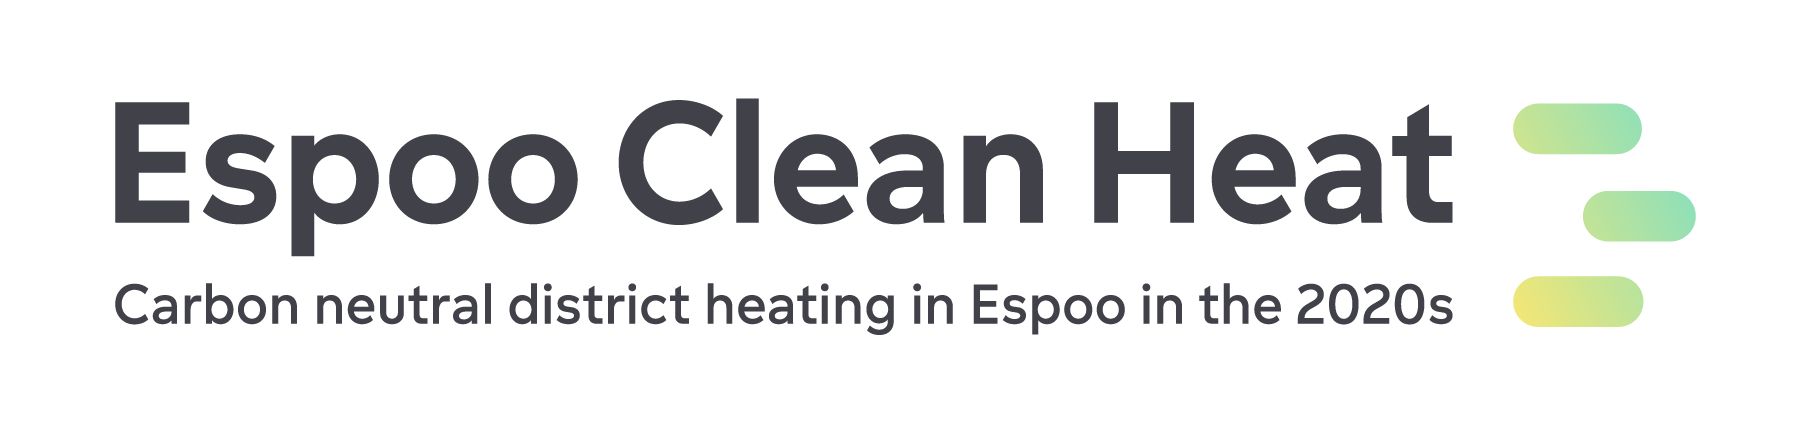 The logo of Espoo Clean Heat project